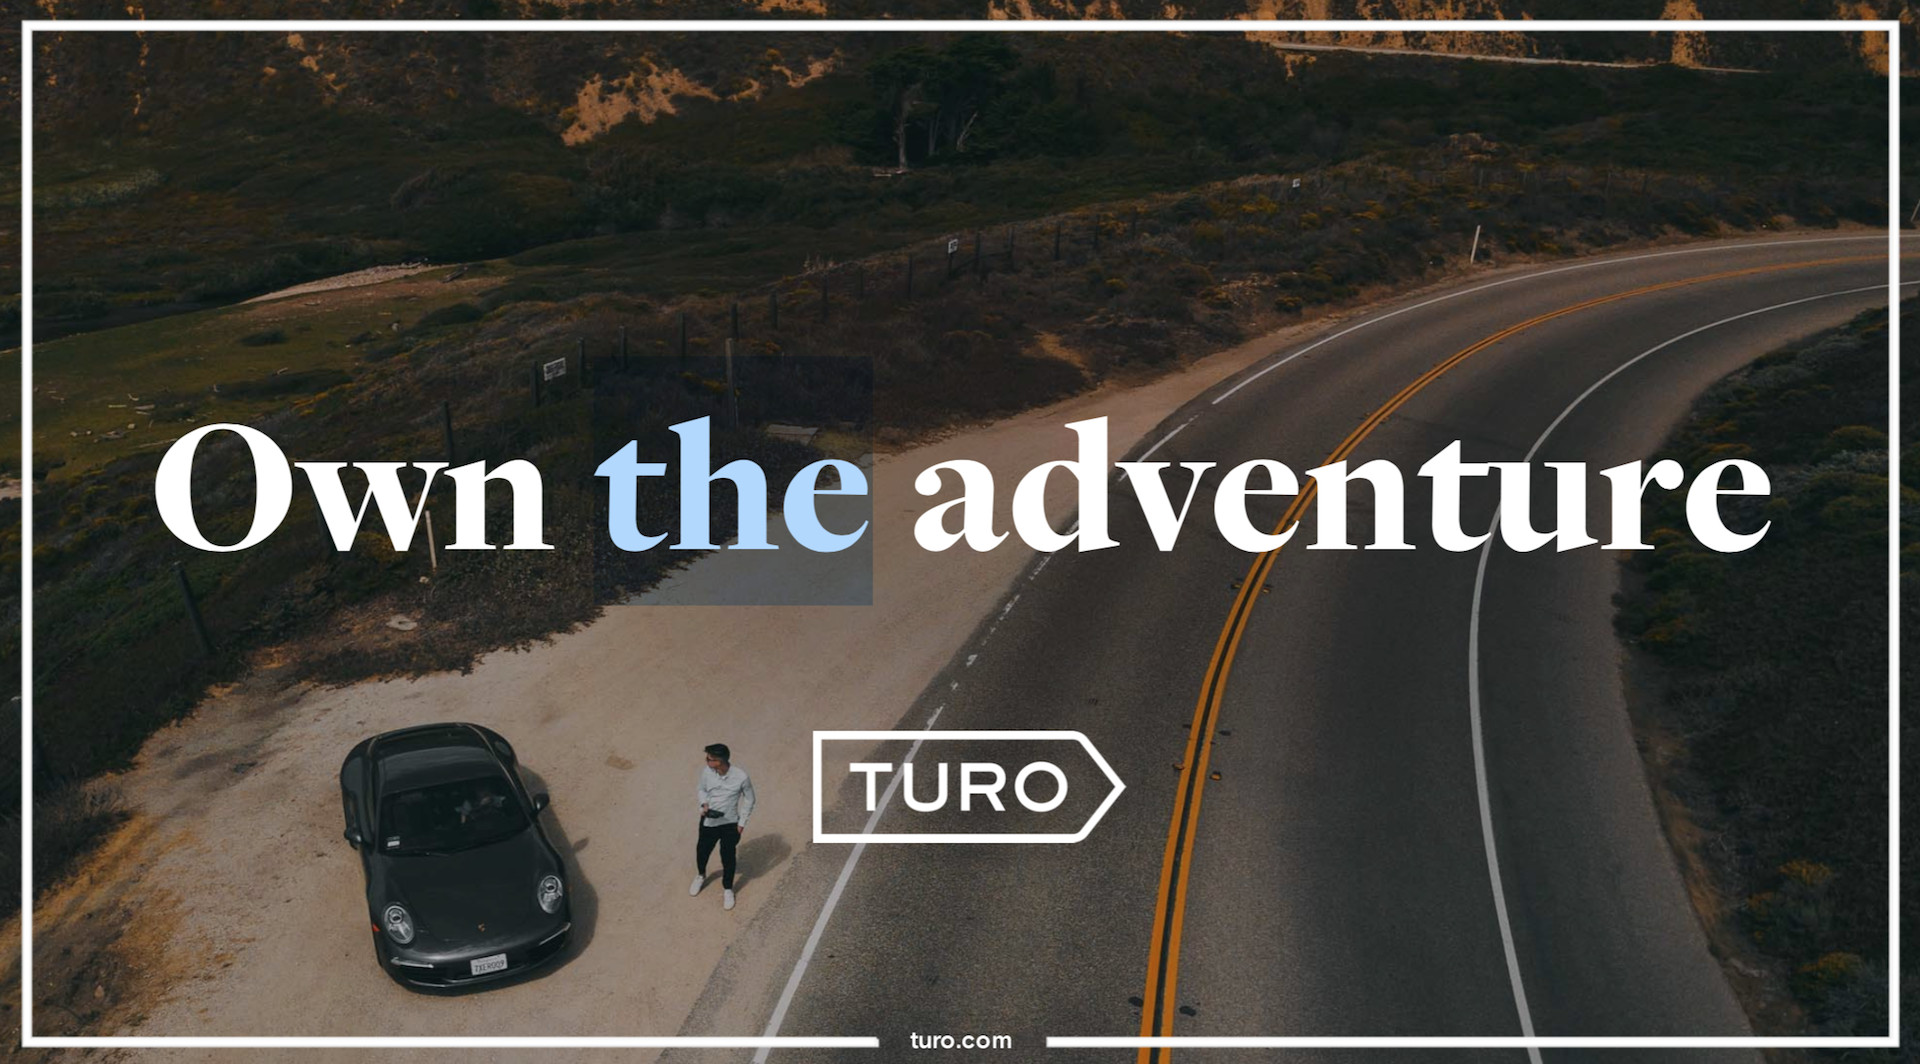 Truly keyless entry: Turo Go unlocks registered cars with a smartphone